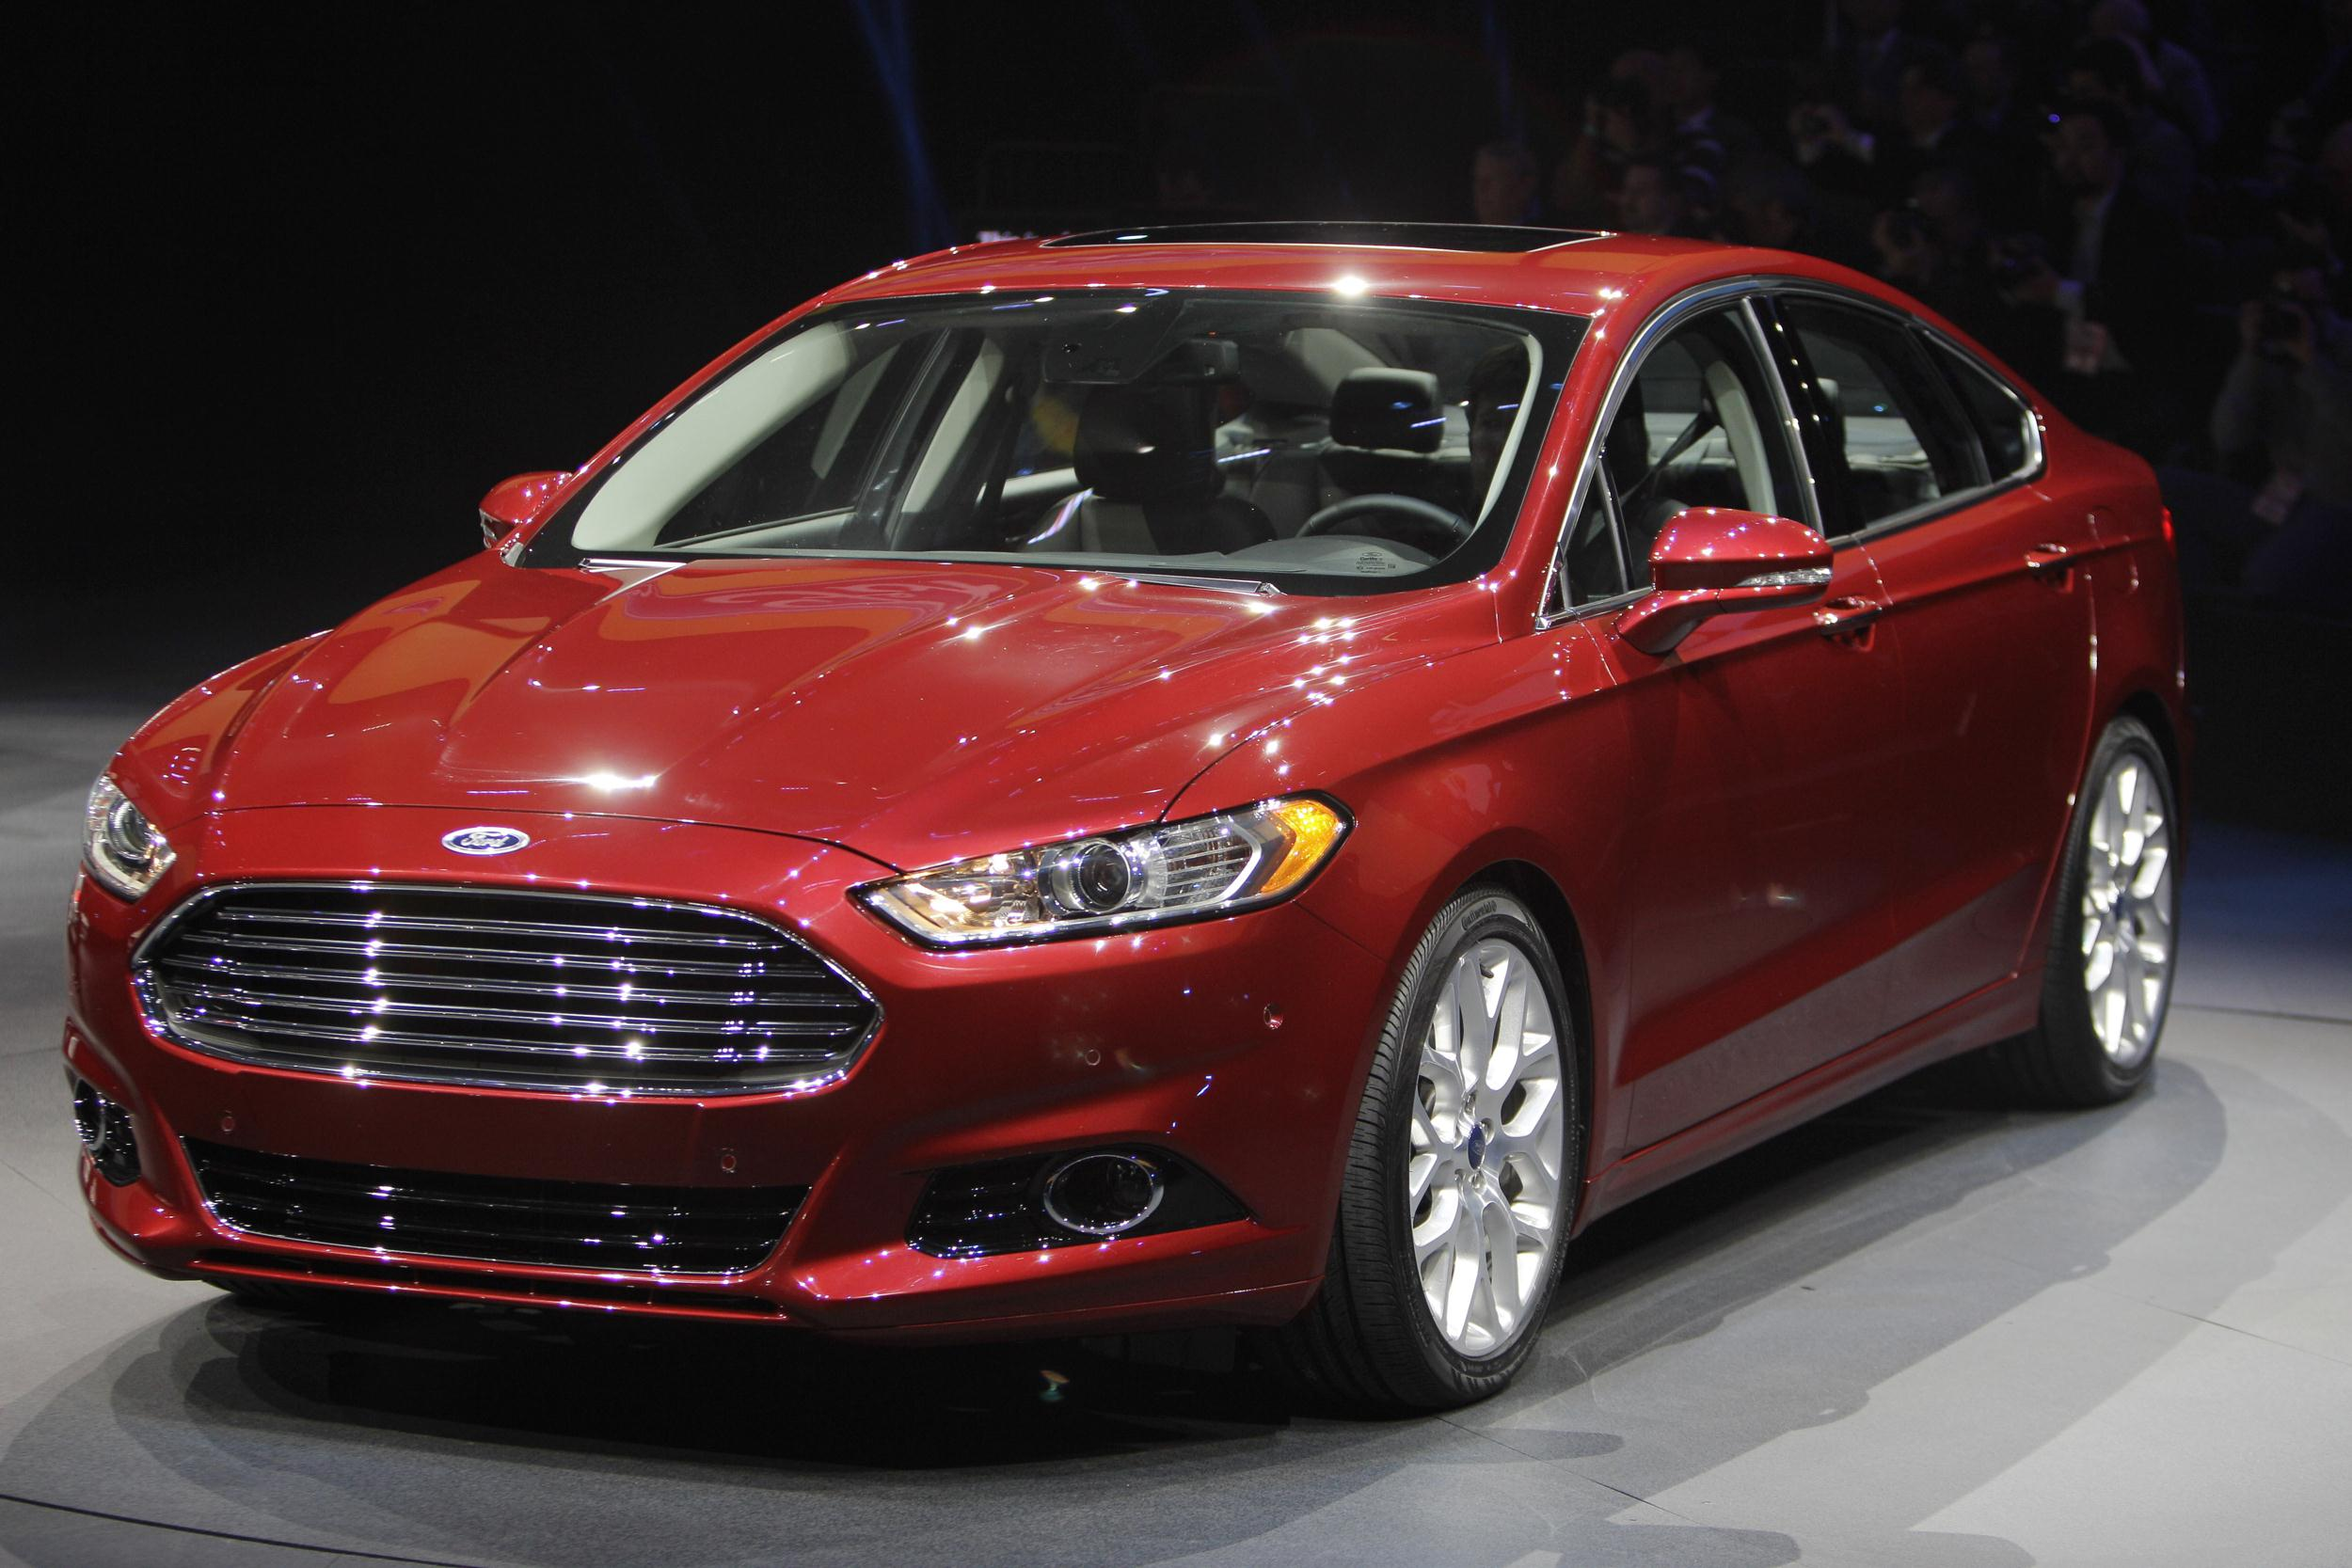 Image: 2013 Ford Fusion